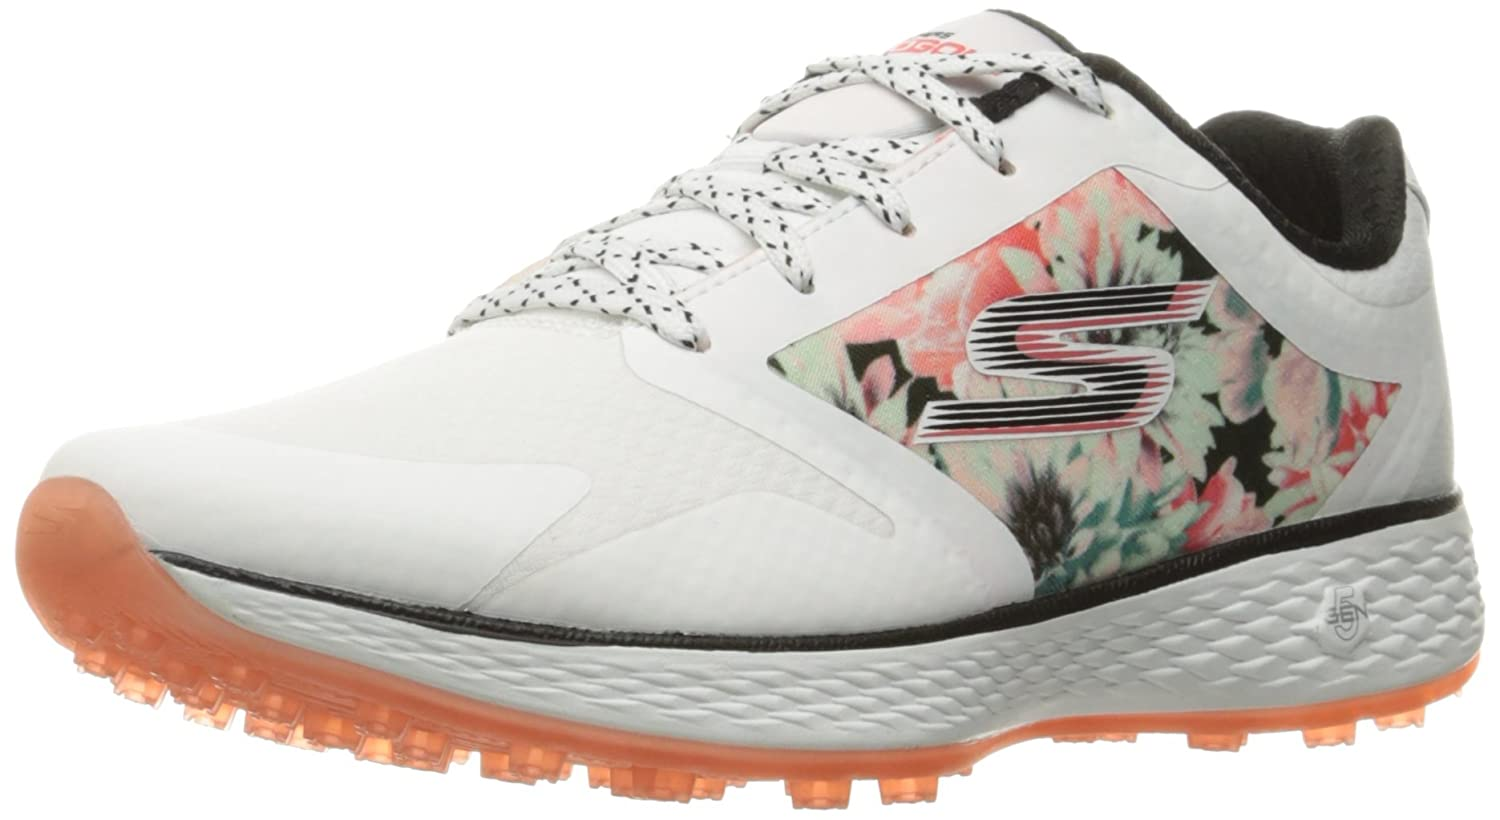 Skechers Women's Go Golf Birdie Golf Shoe B01H07GIQA 8 B(M) US|White/Multi Tropic